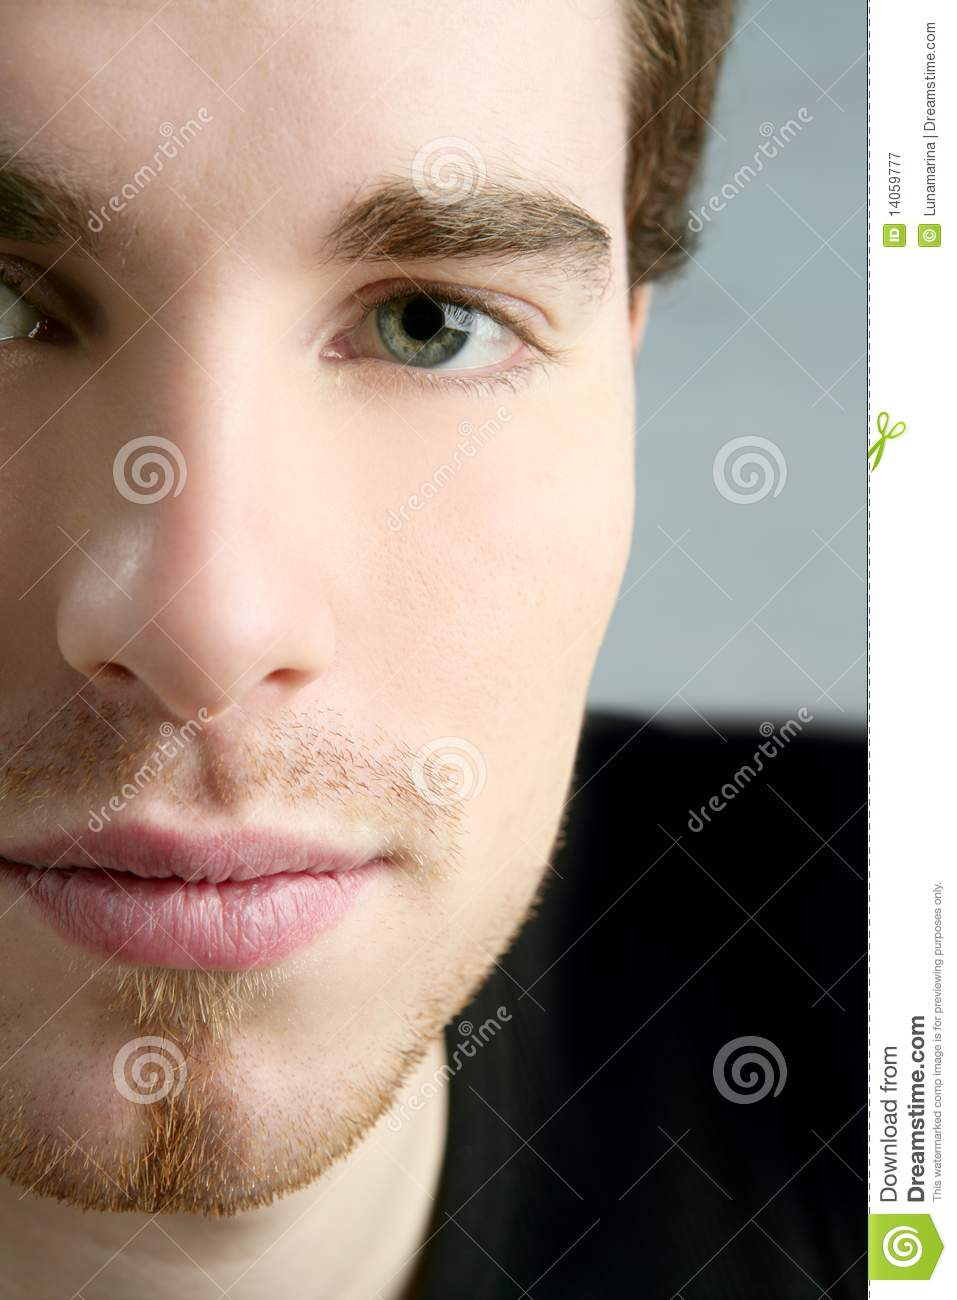 Face To Camera Young Handsome Man Portrait Royalty Free